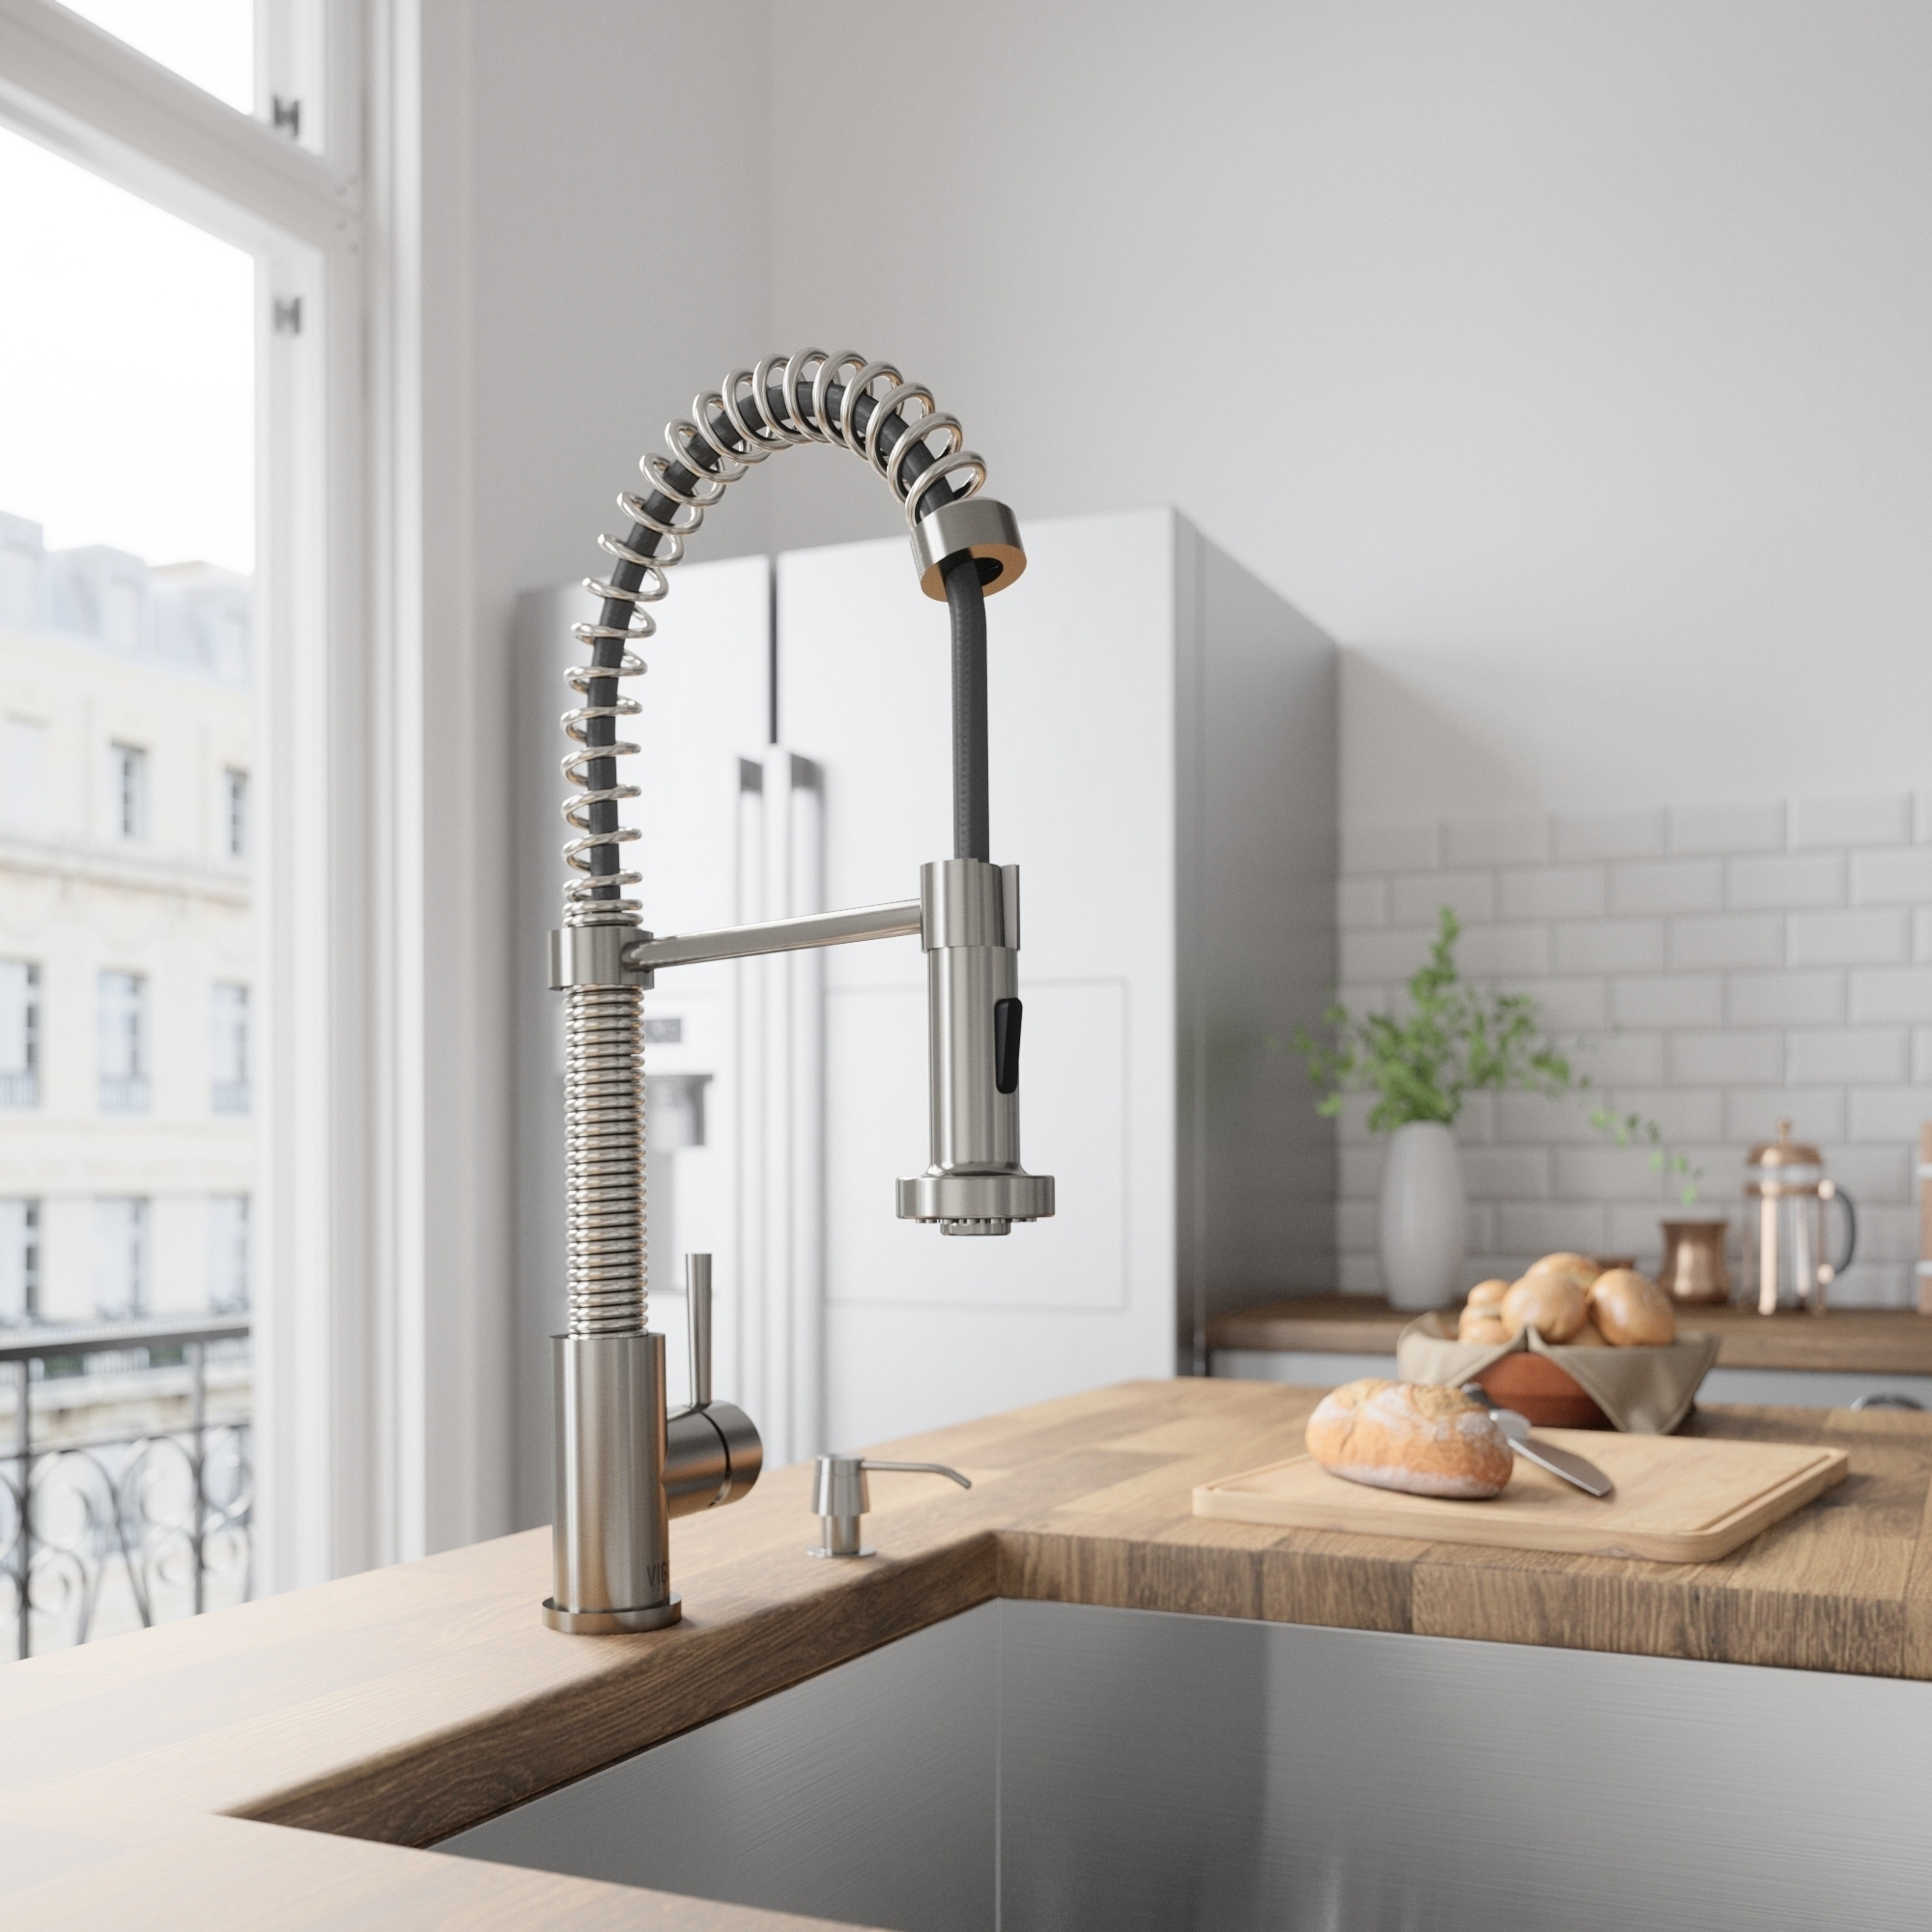 Vigo Edison Stainless Steel Brass Pull-down Spray Kitchen Faucet ...